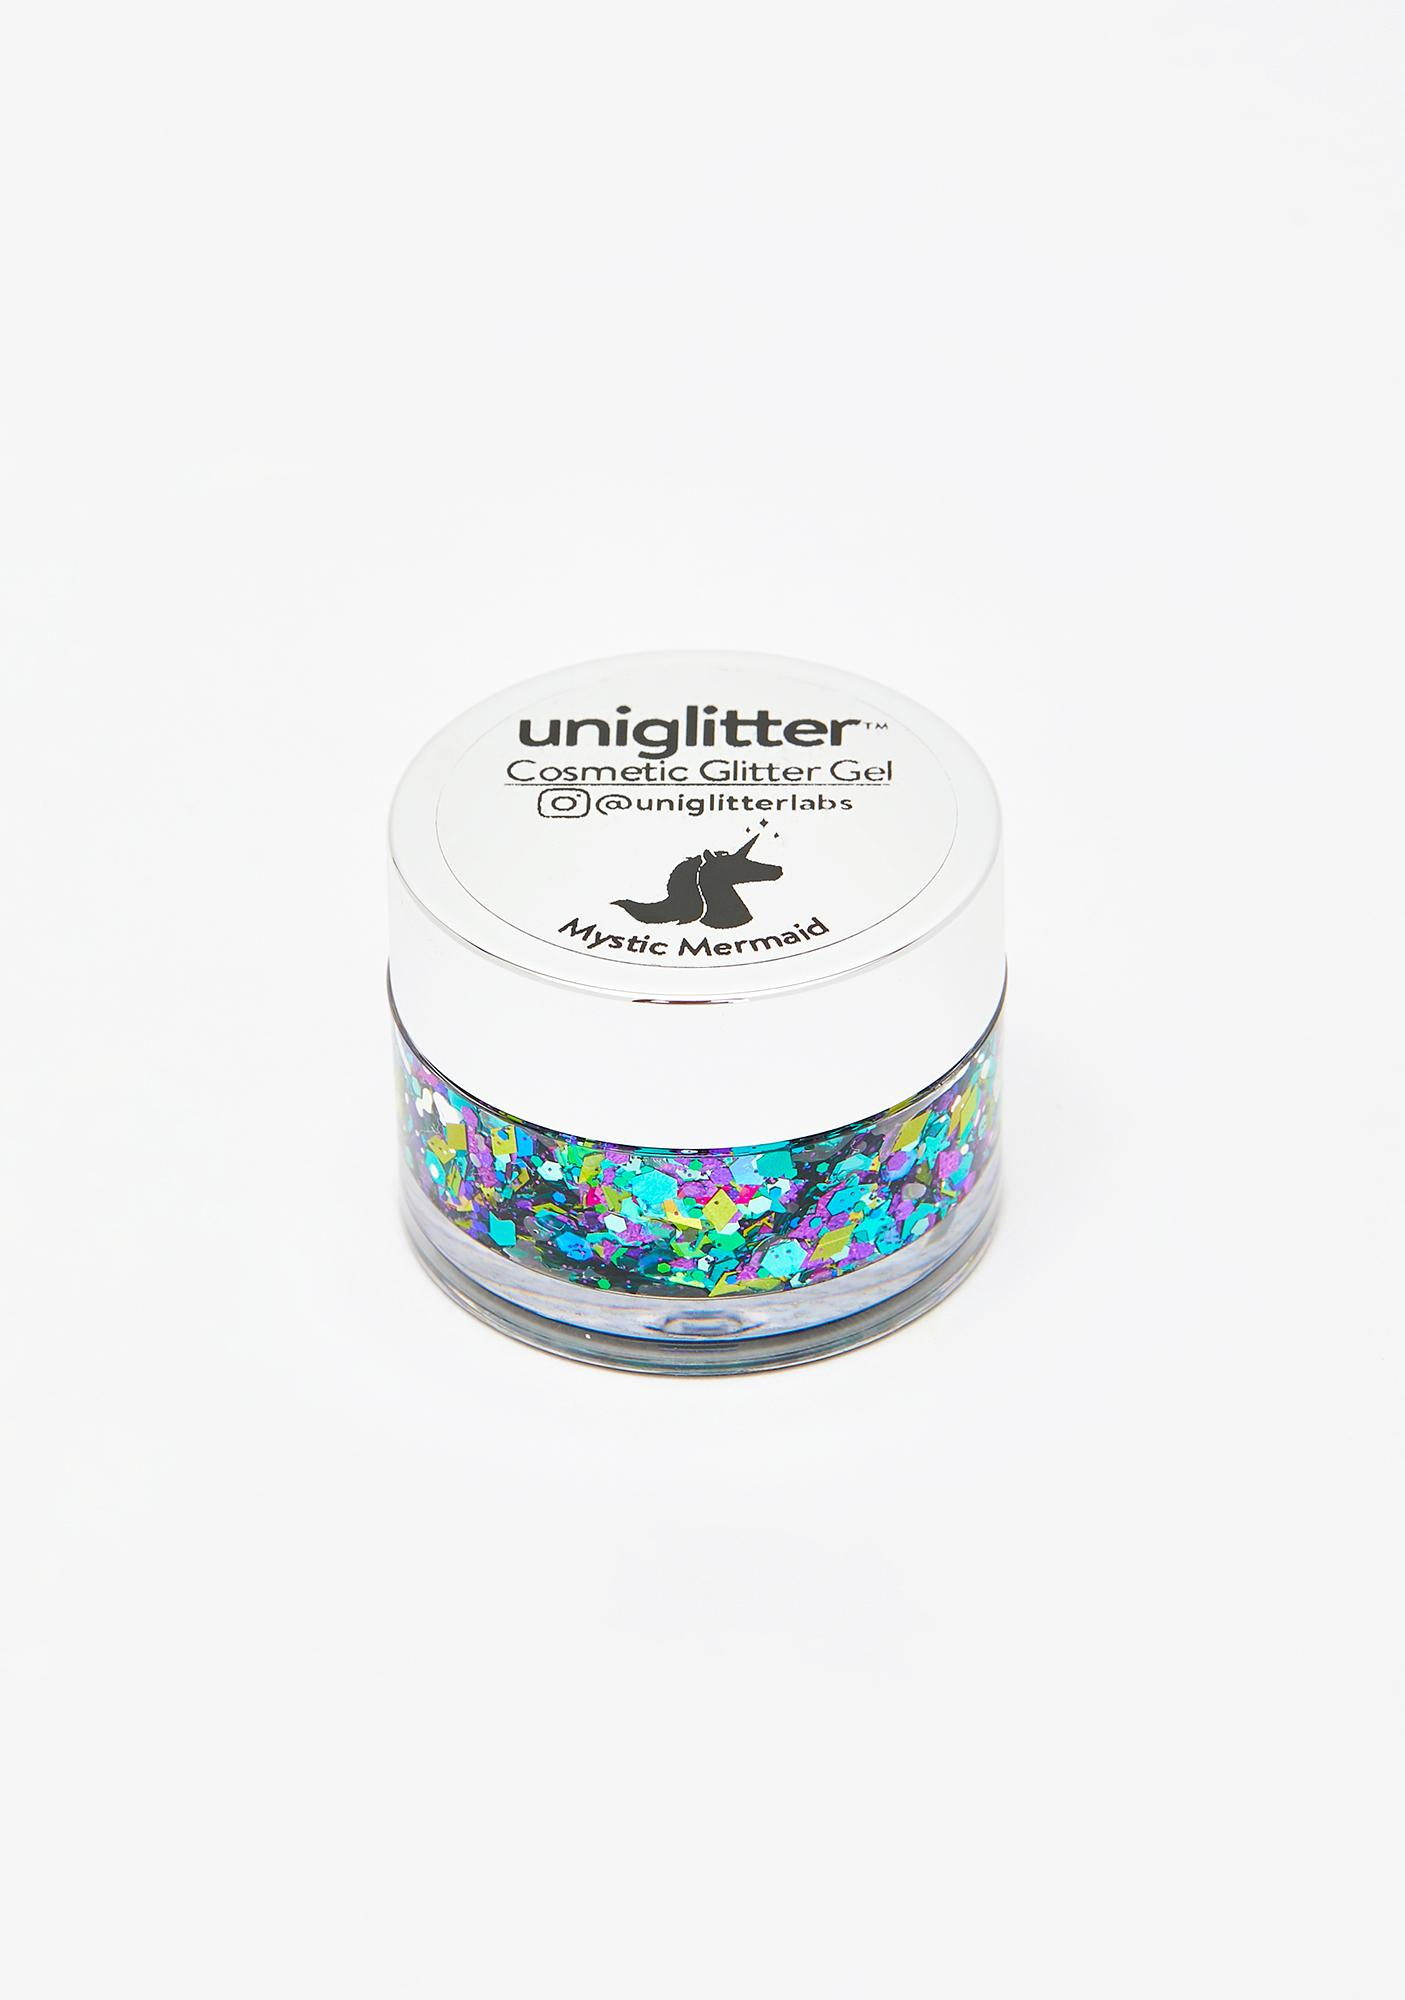 Uniglitter Mystic Mermaid Glitter Gel